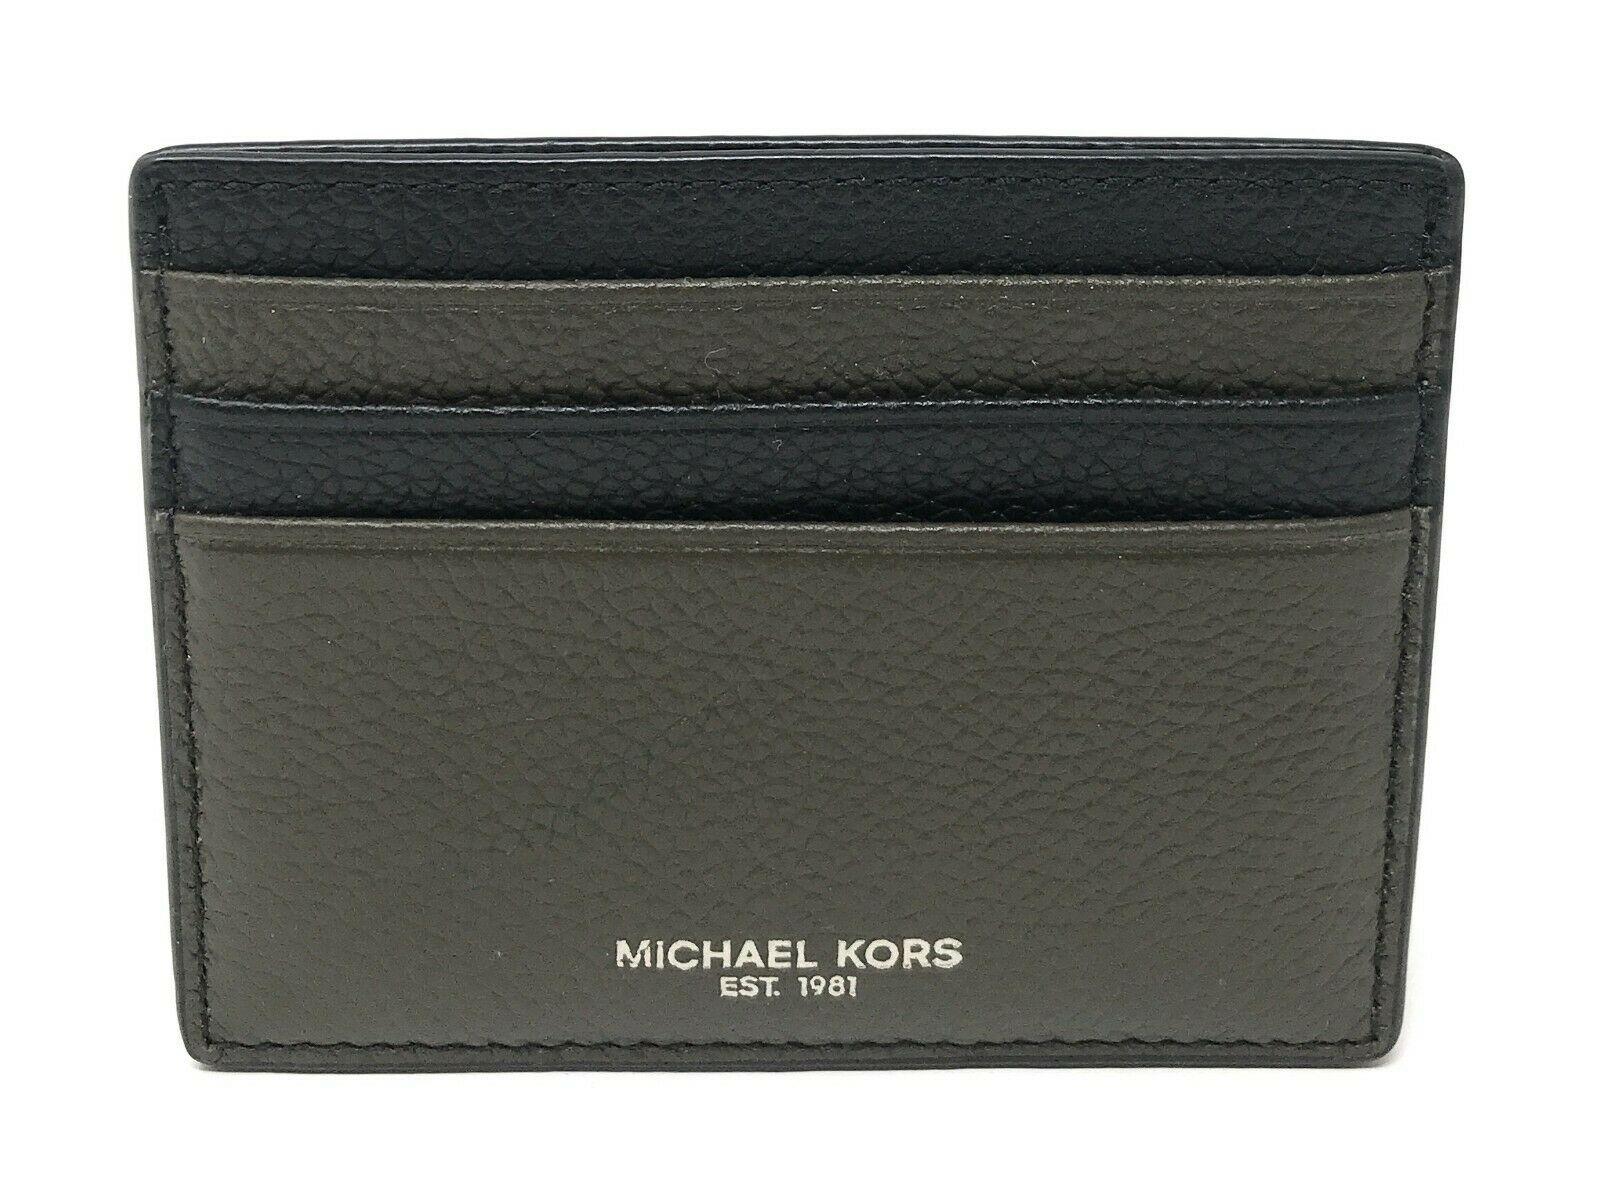 Michael Kors Men's Warren Card Case Money Clip Wallet Leather Credit Card Holder